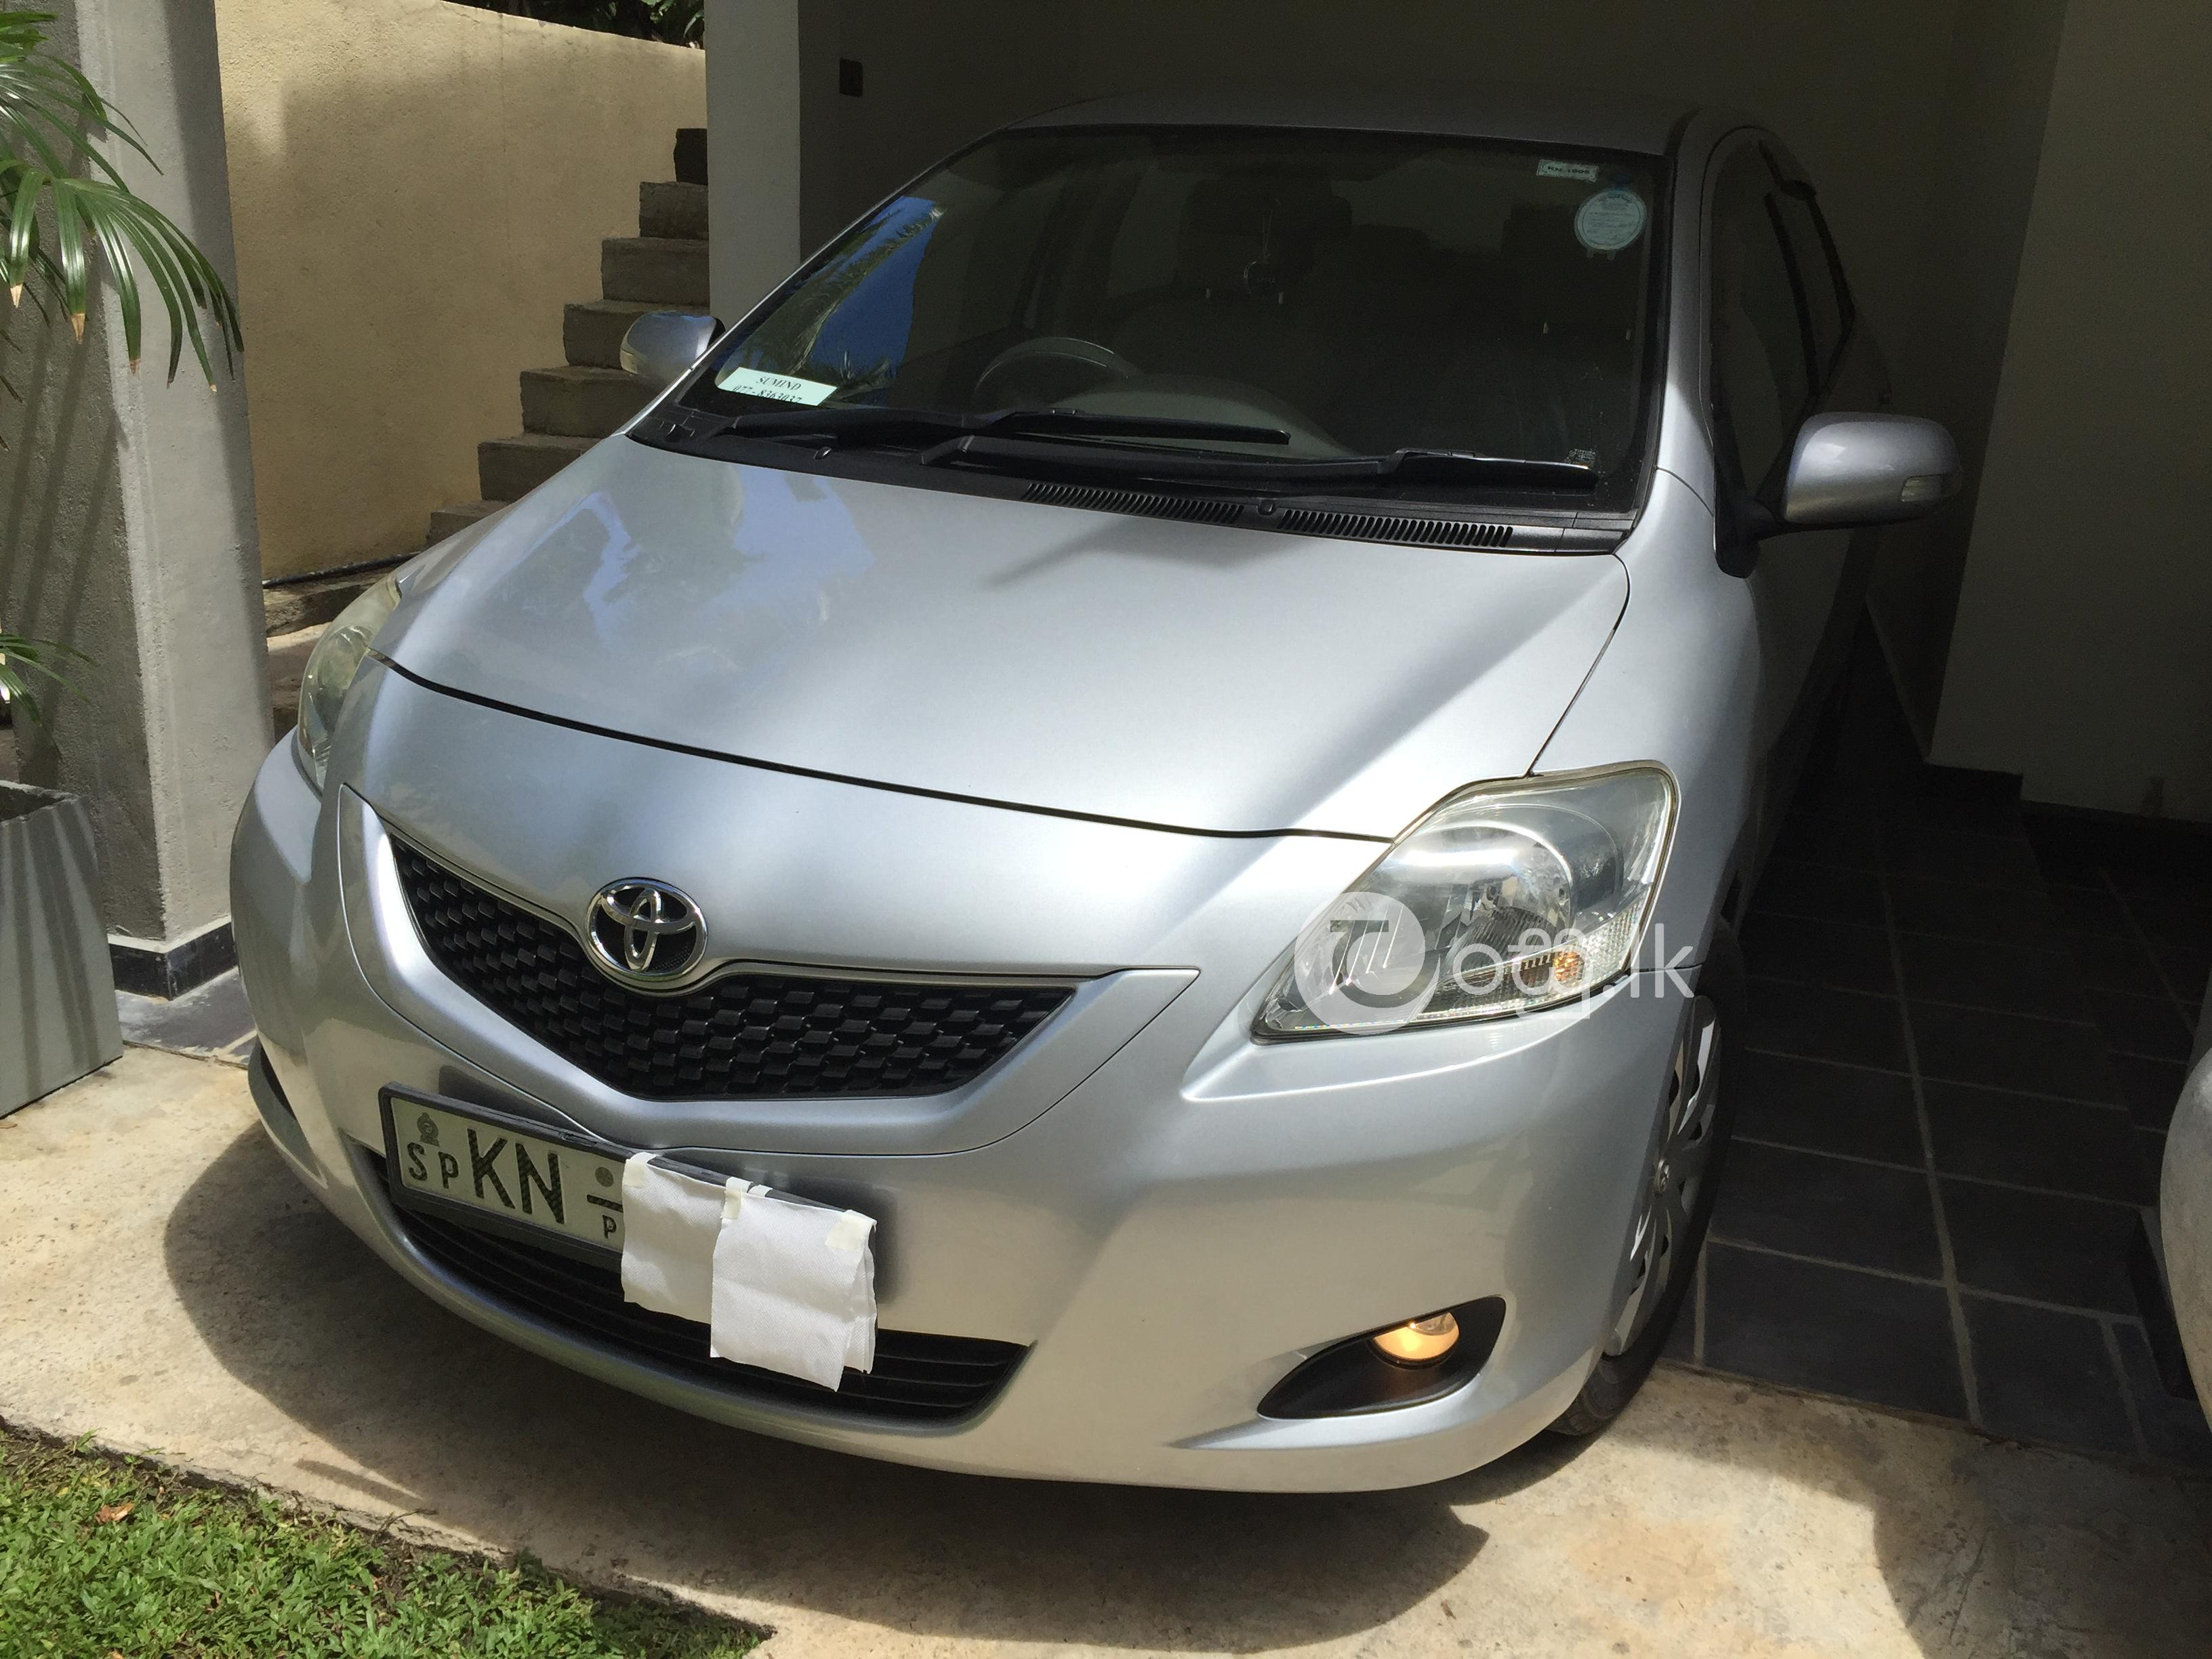 Toyota belta 1.3cc Cars in Galle